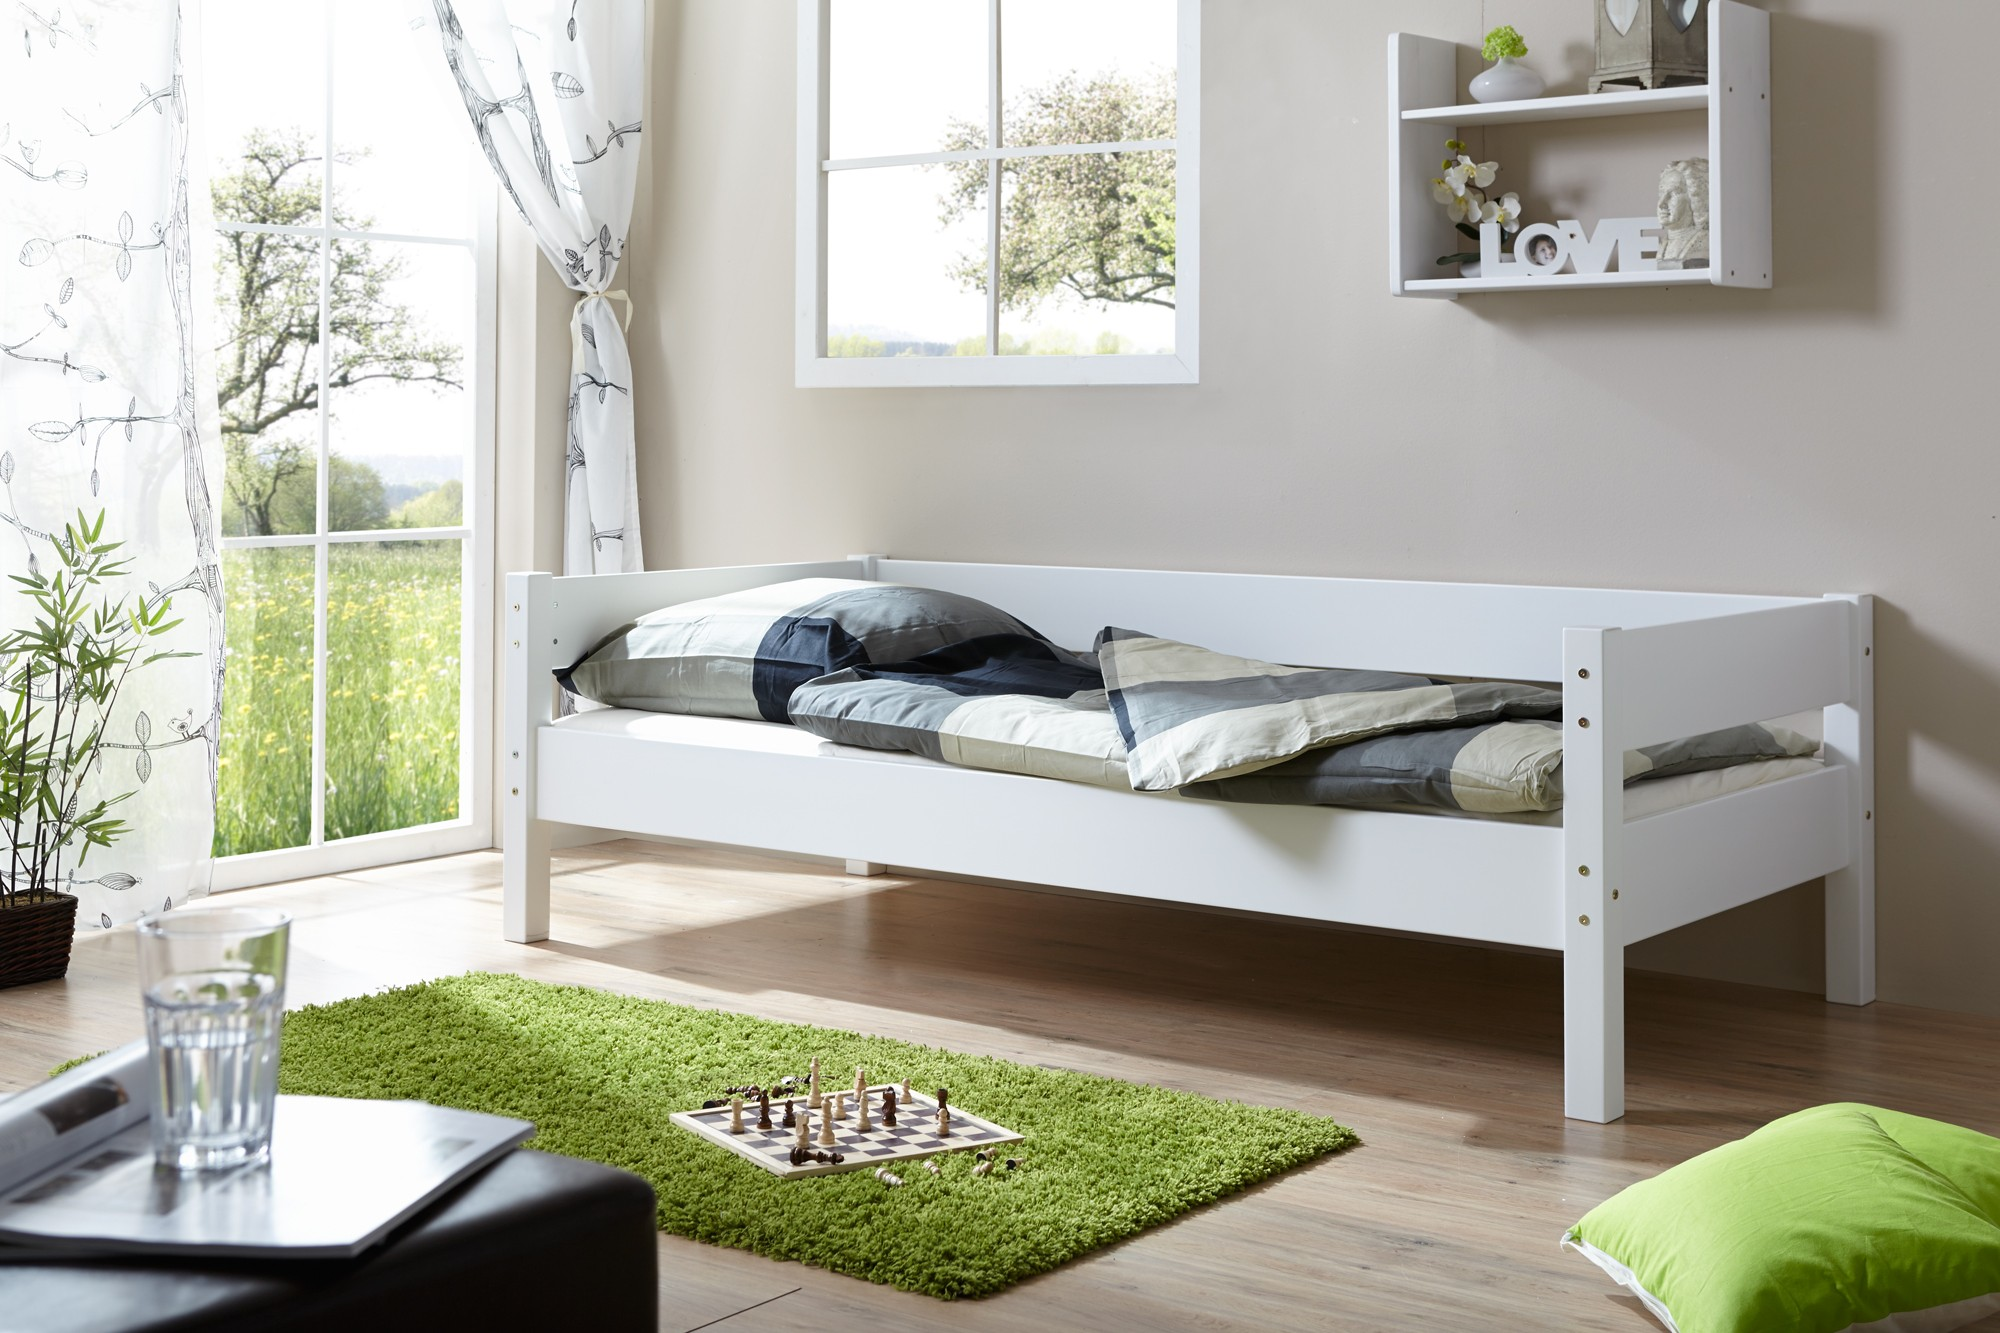 einzelbett 90x200 buche weiss h c m bel. Black Bedroom Furniture Sets. Home Design Ideas